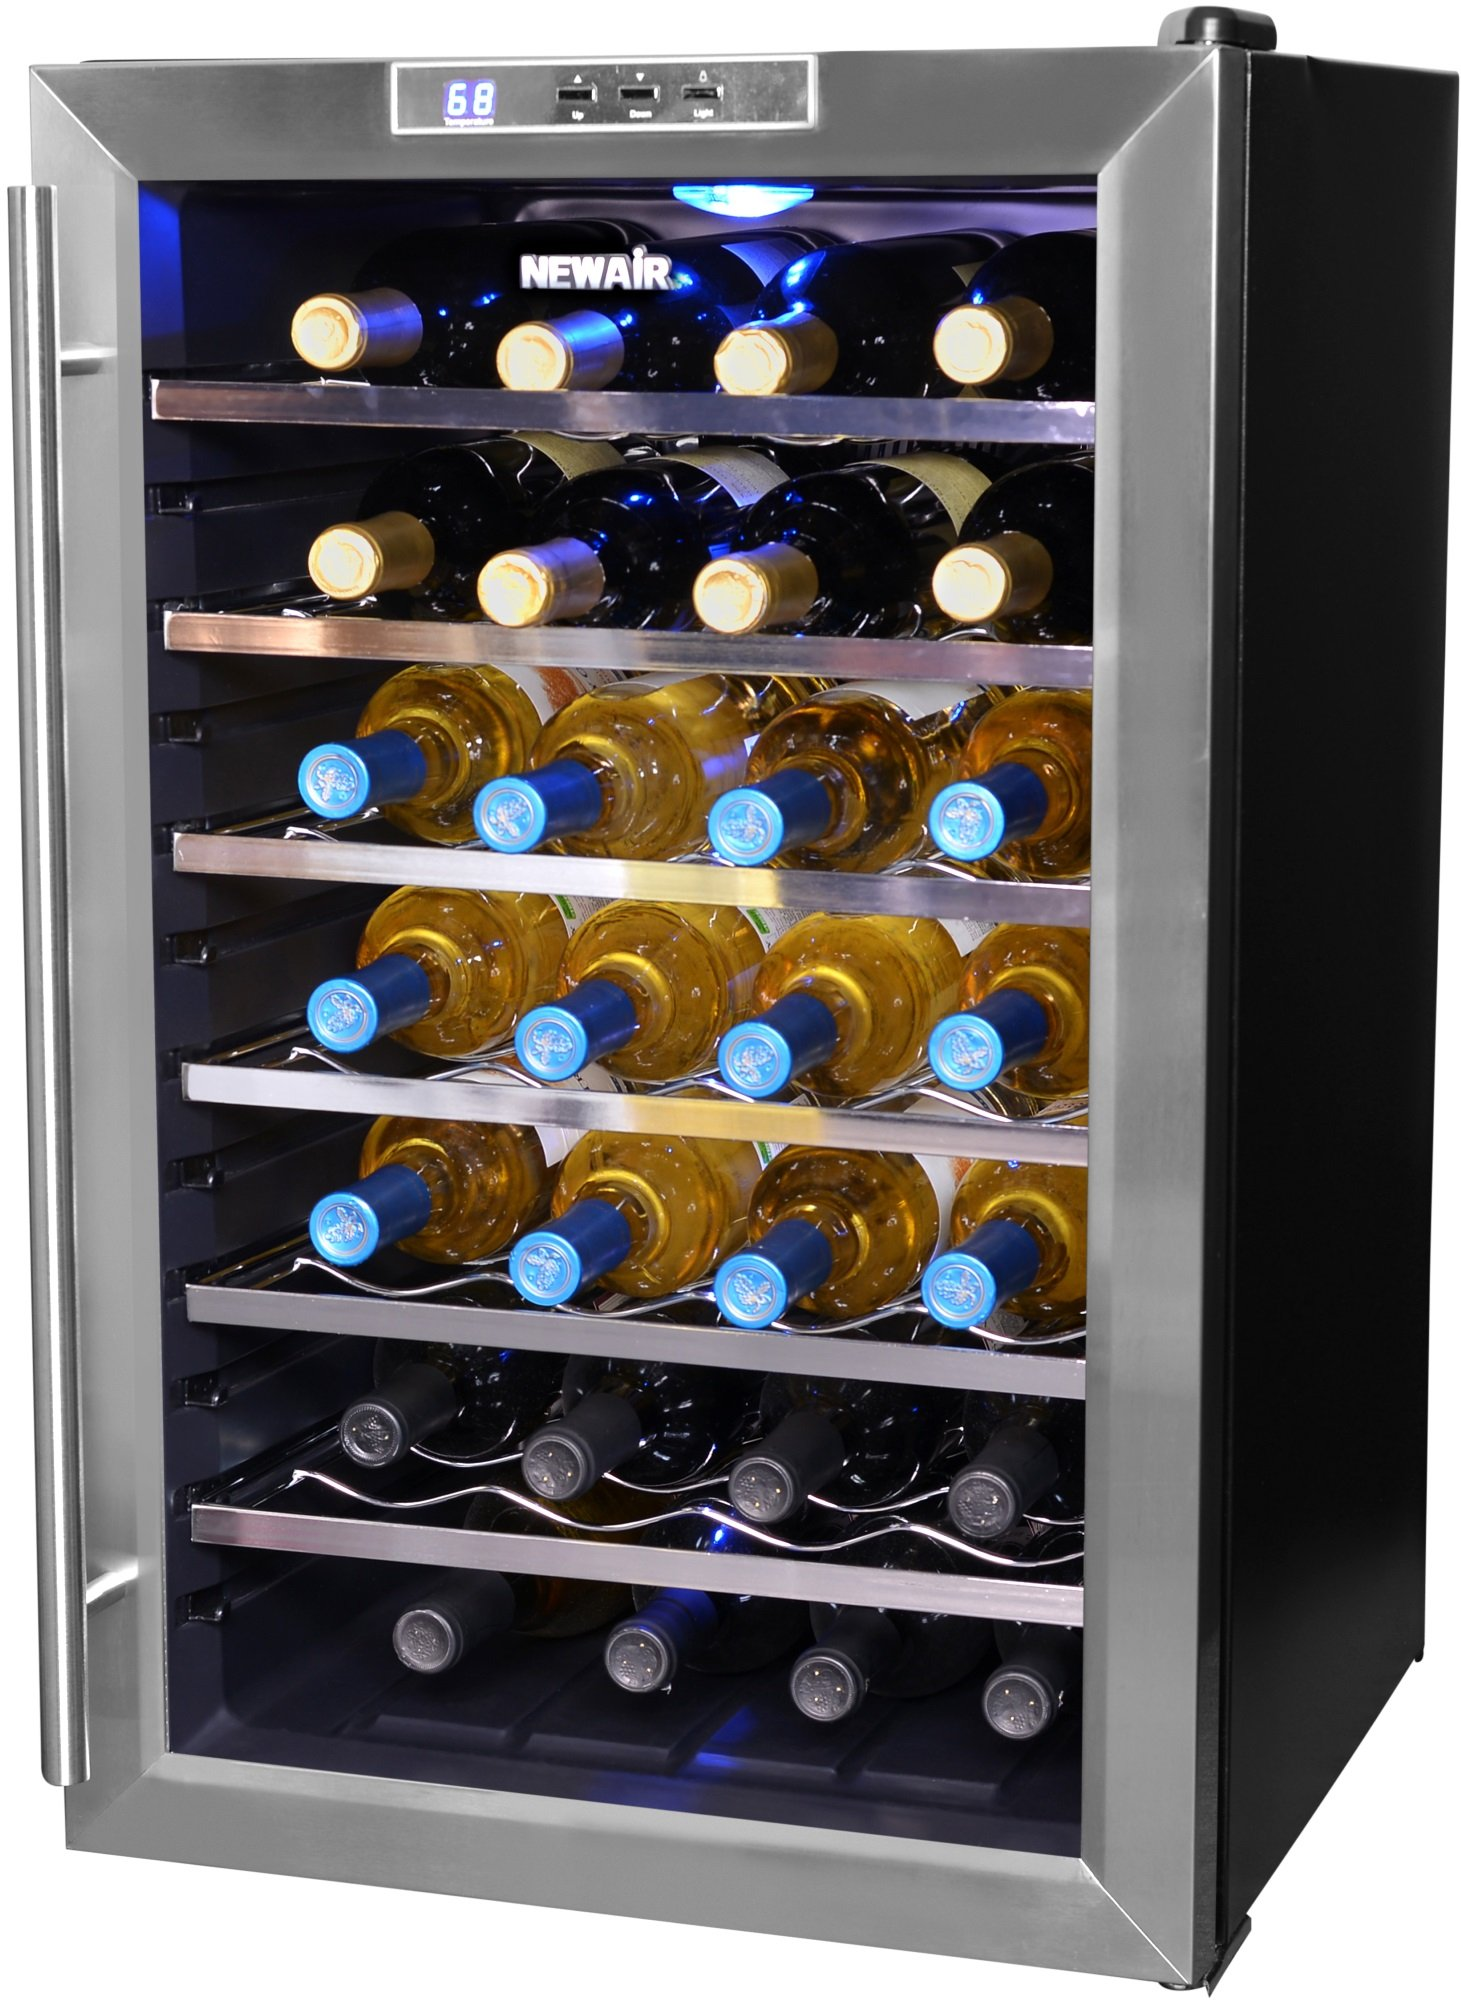 NewAir AW-281E 28 Bottle Thermoelectric Wine Cooler by NewAir